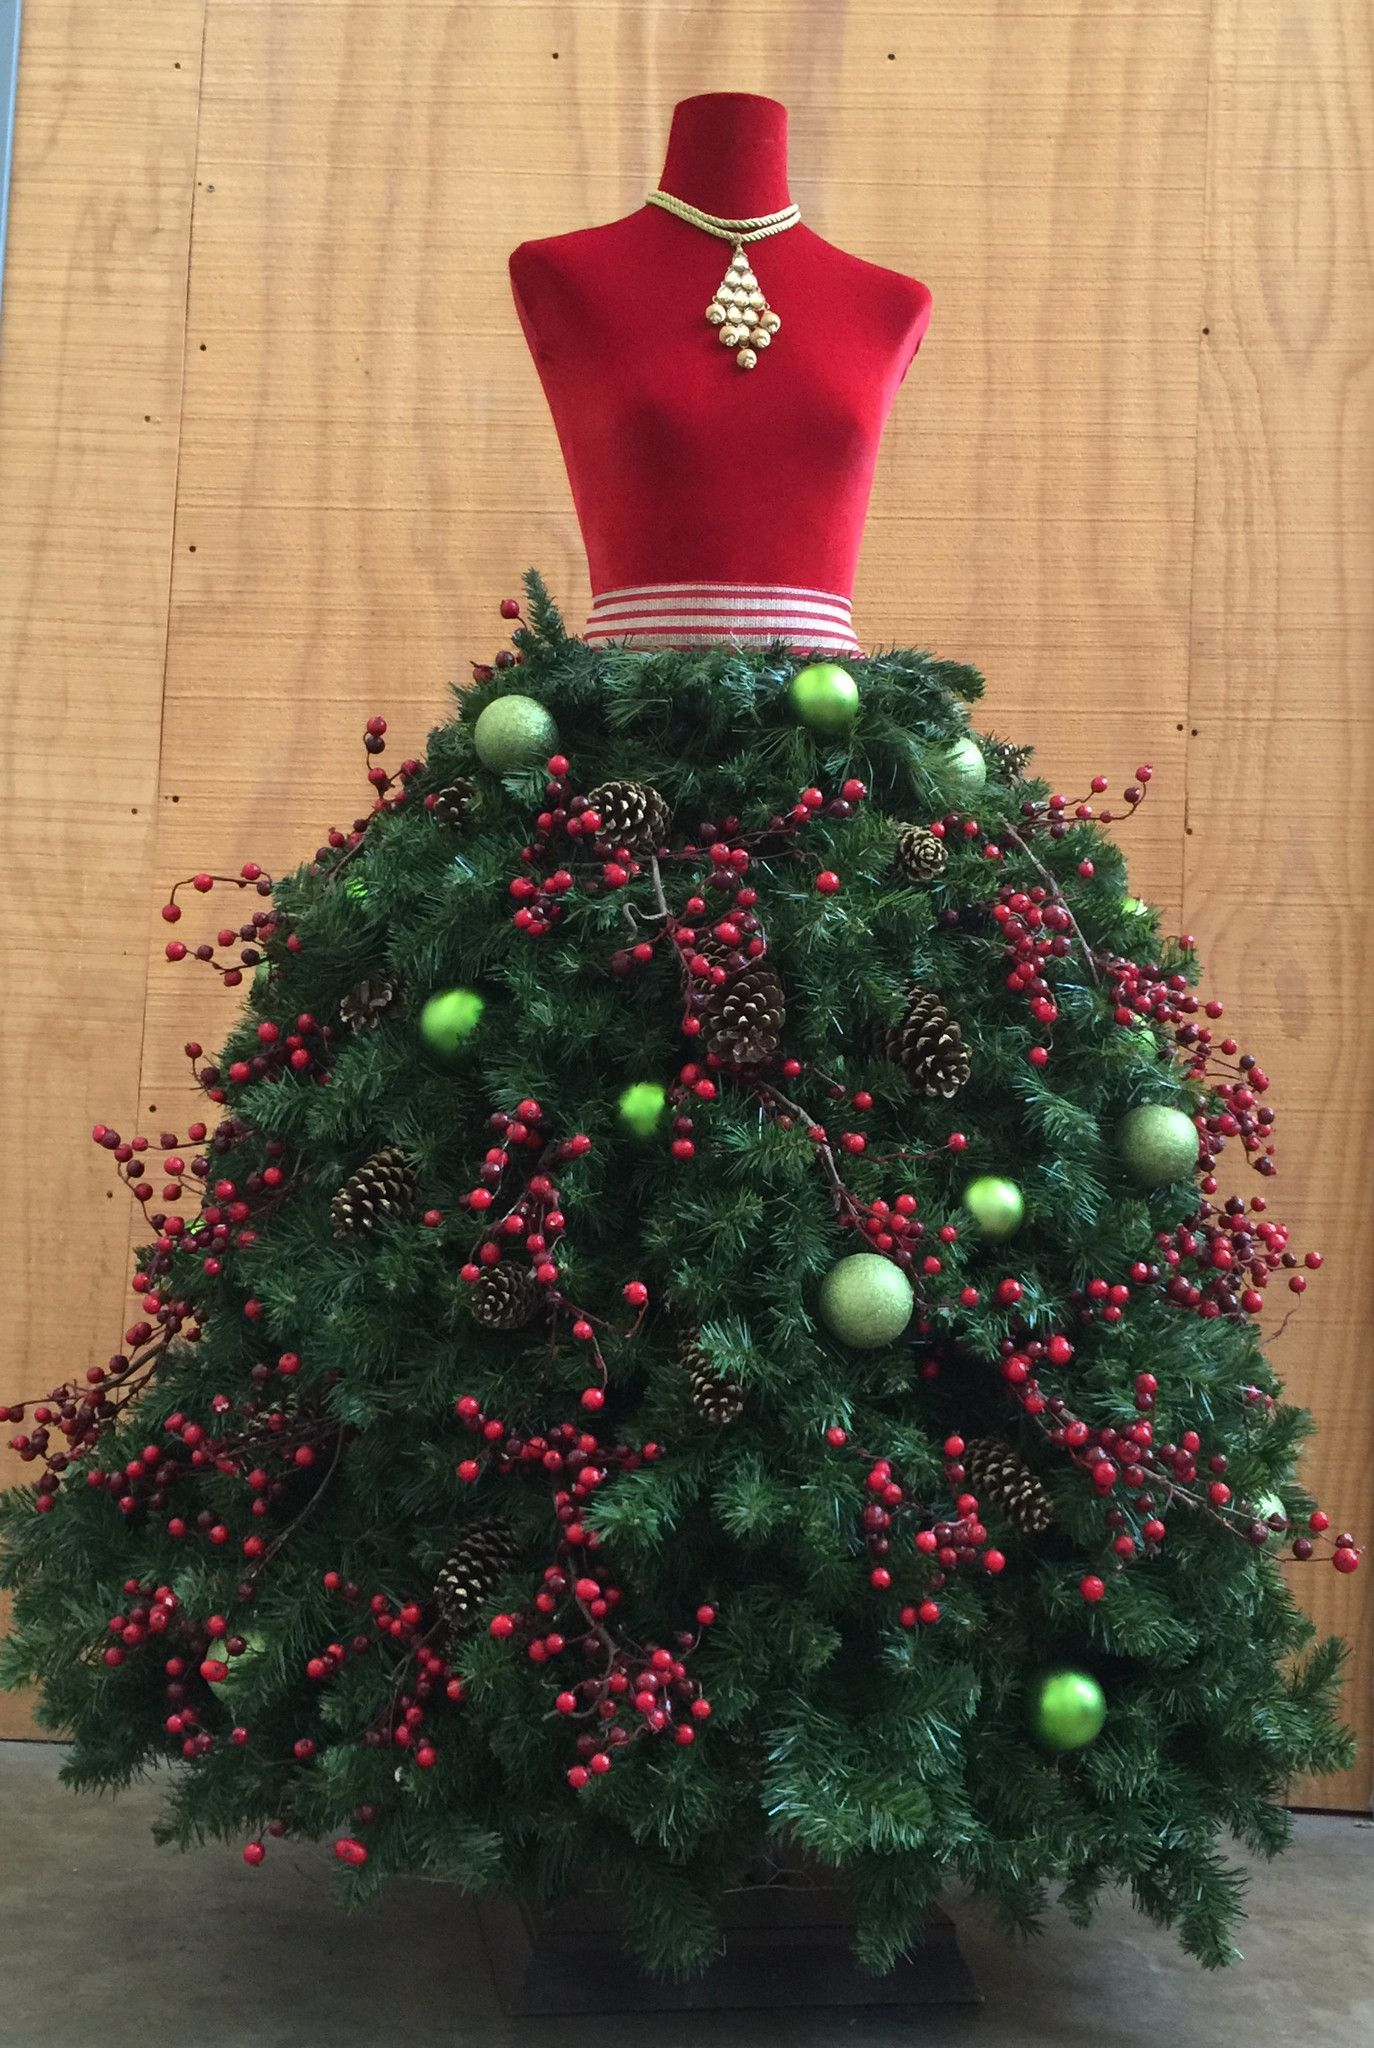 Ebook Tutorial Dress Form Christmas Tree Grand Diva